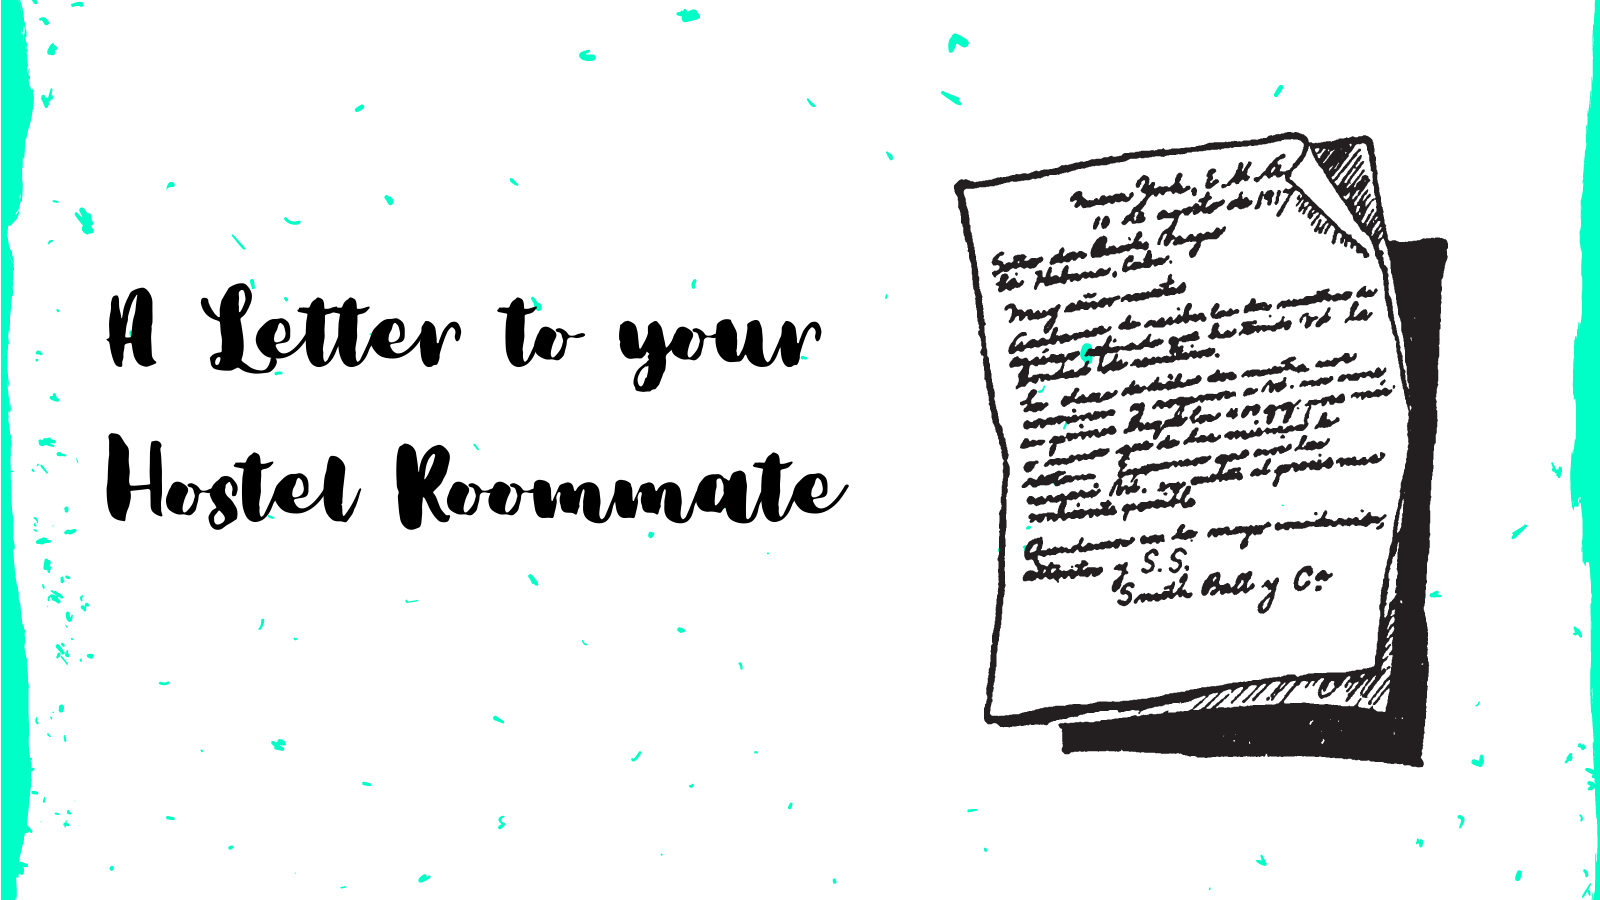 A-letter-to-your-hostel-roommate-writing-challenge